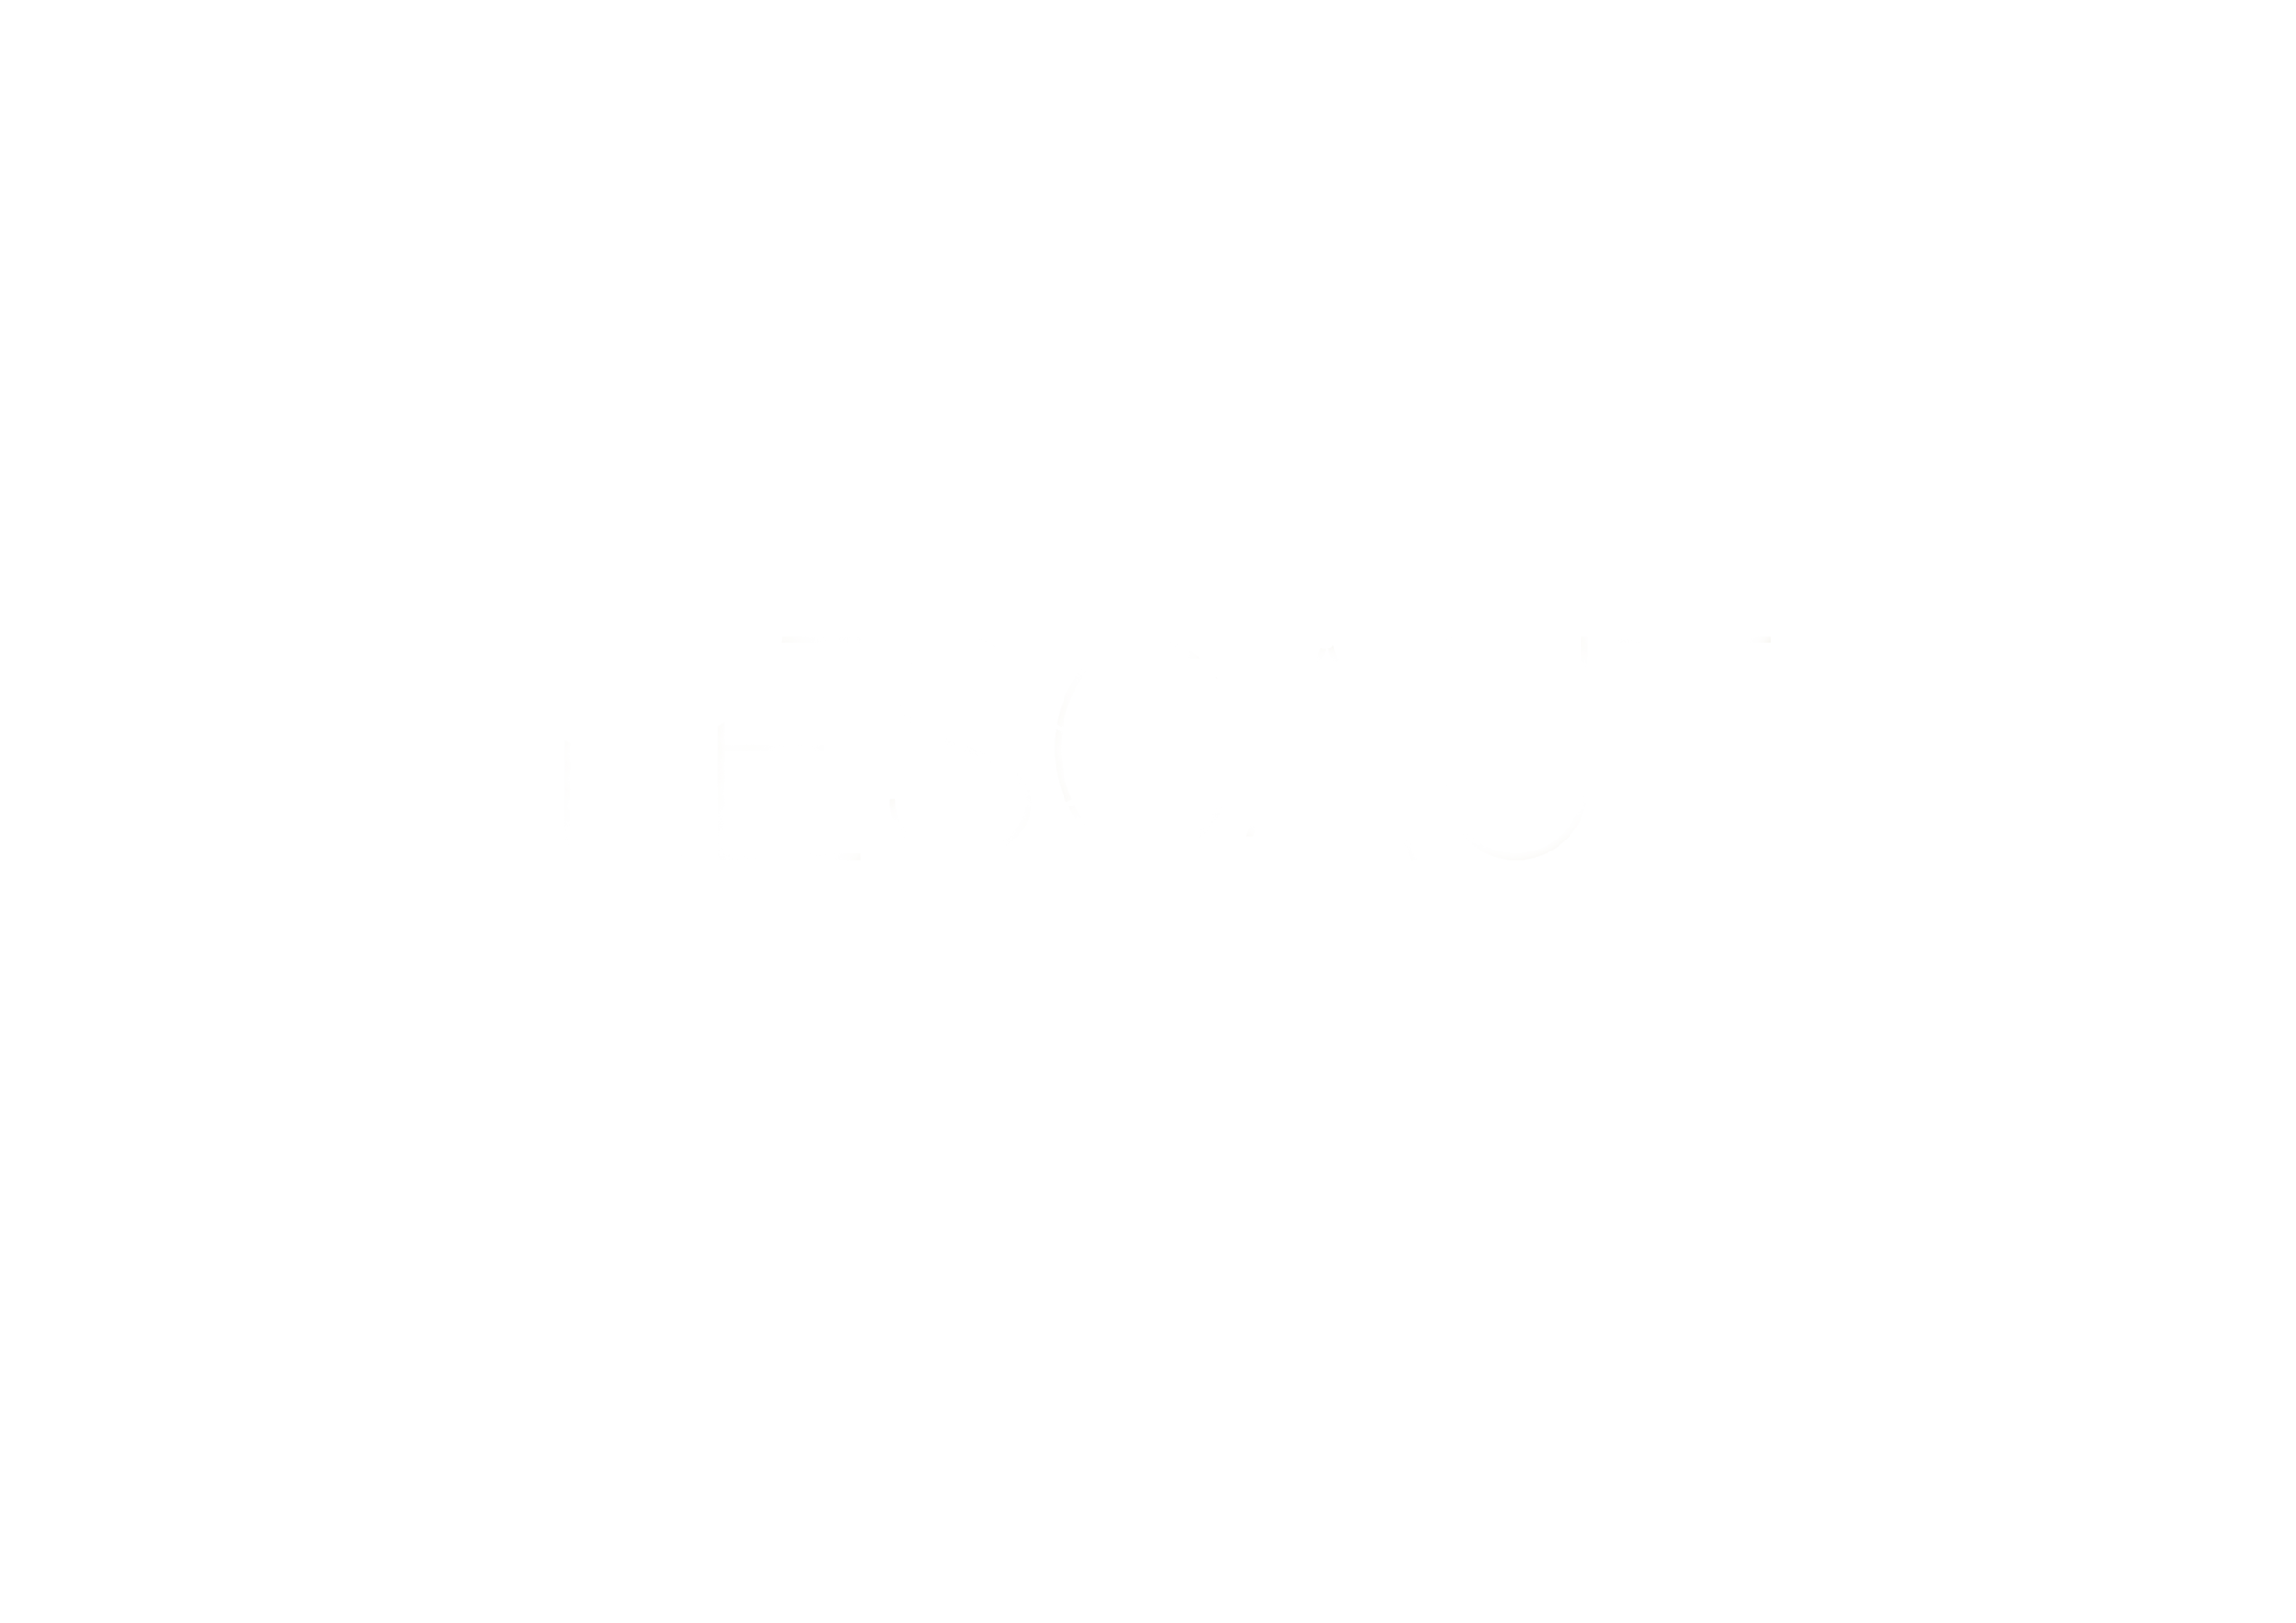 1987_white.png